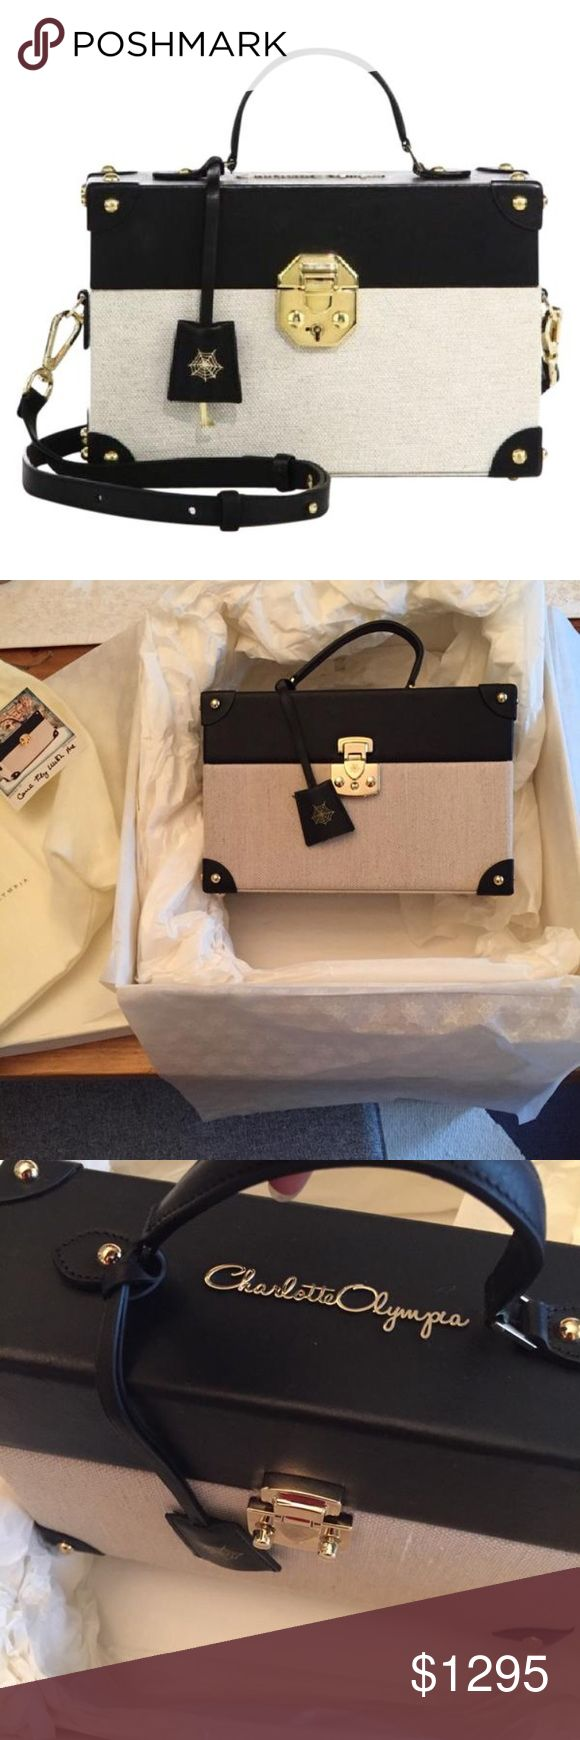 🎀Charlotte Olympia come fly with me boxed bag Leather and canvas combination. Inspired by vintage trunk suitcase. Boxed and structured bag is very much in trend right now. Made in Italy. Comes with absolutely everything.. sold out Charlotte Olympia Bags Crossbody Bags